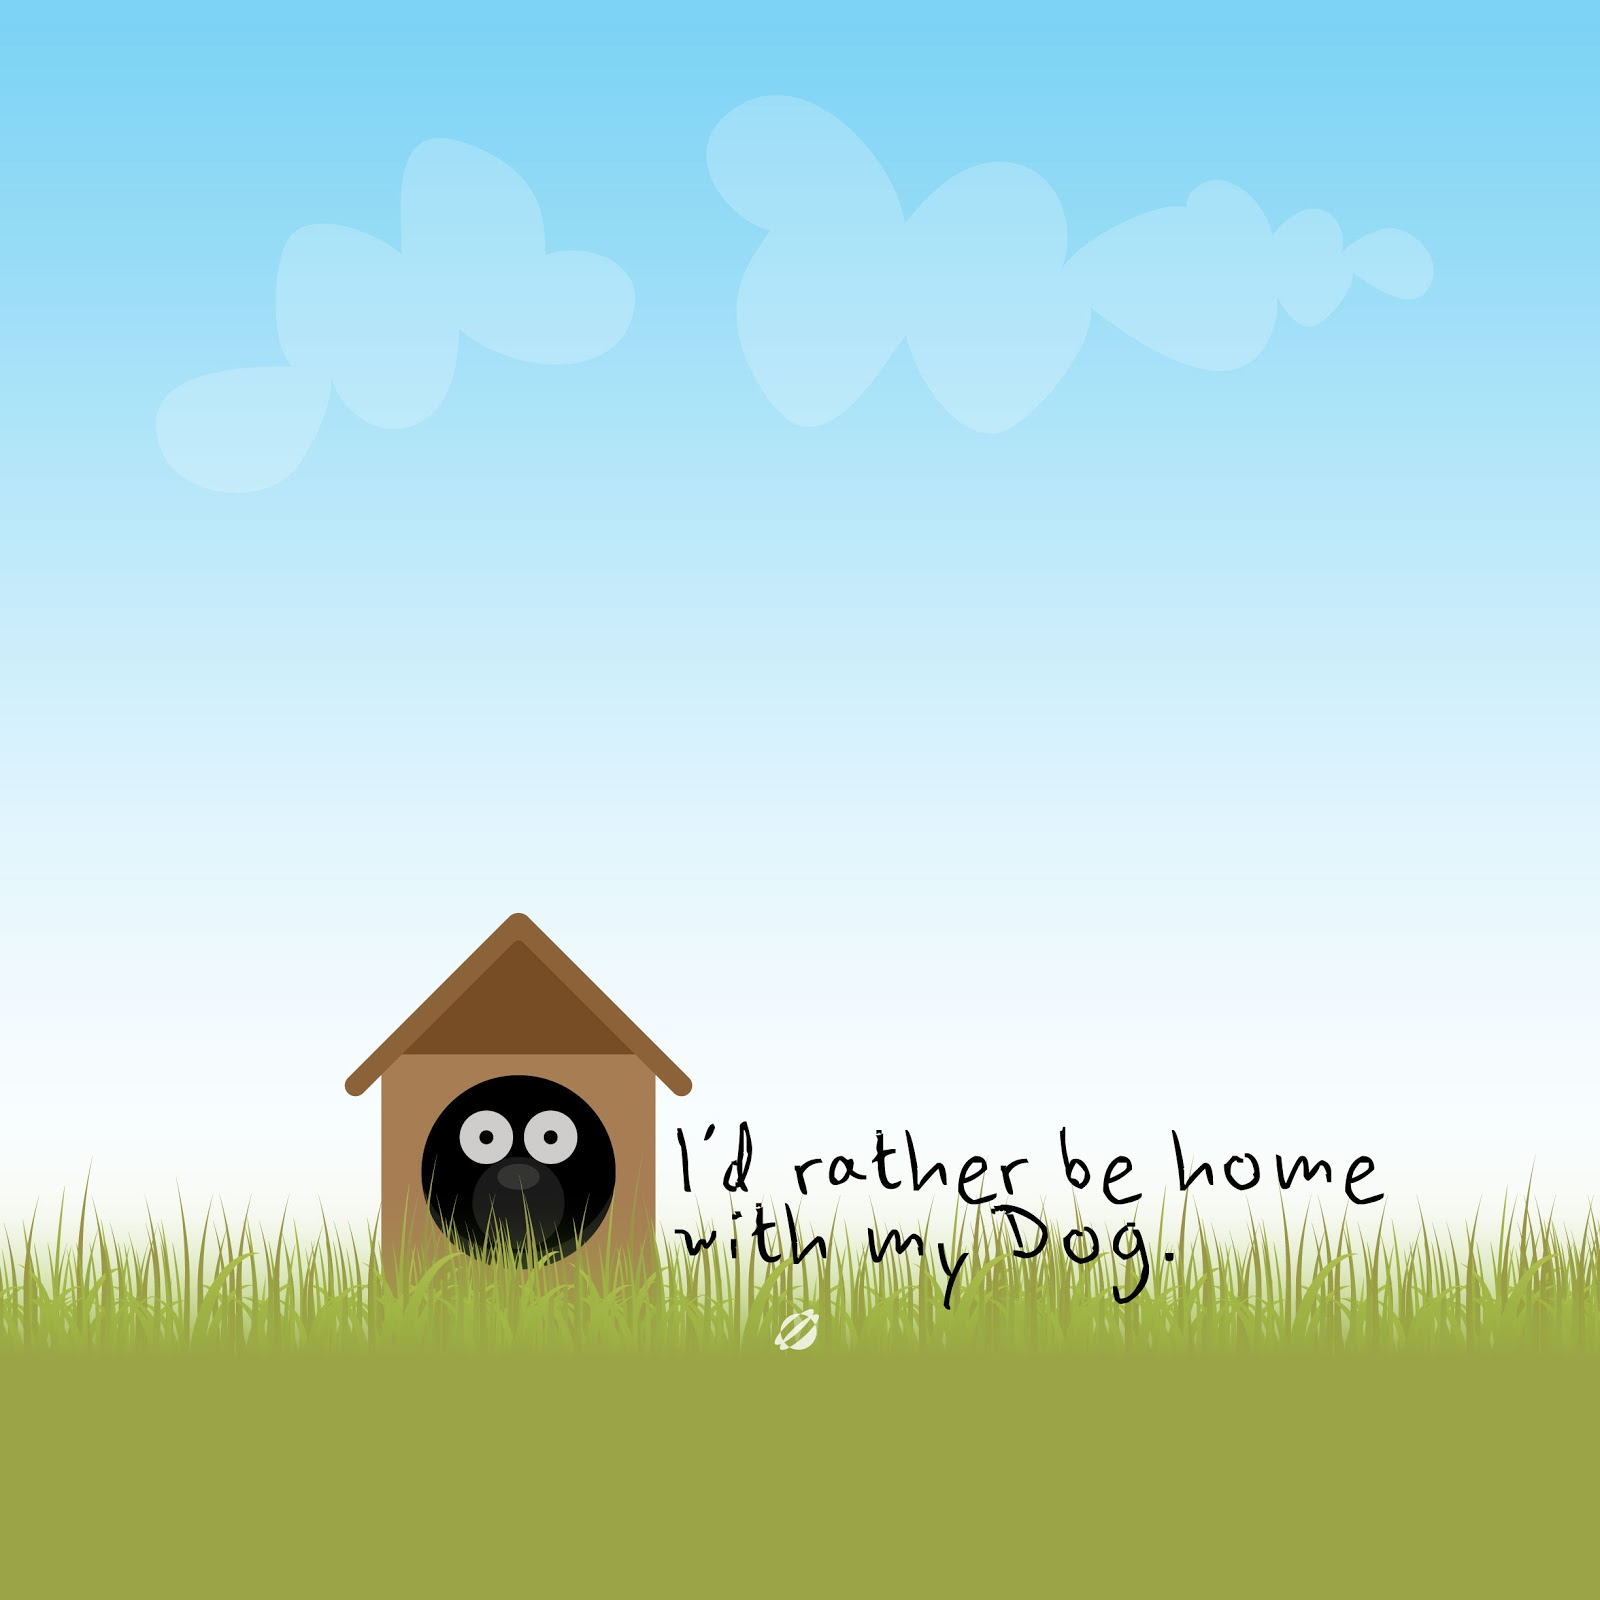 LostBumblebee iOS7 iPad WallPaper FREE- I'd rather be home with my dog